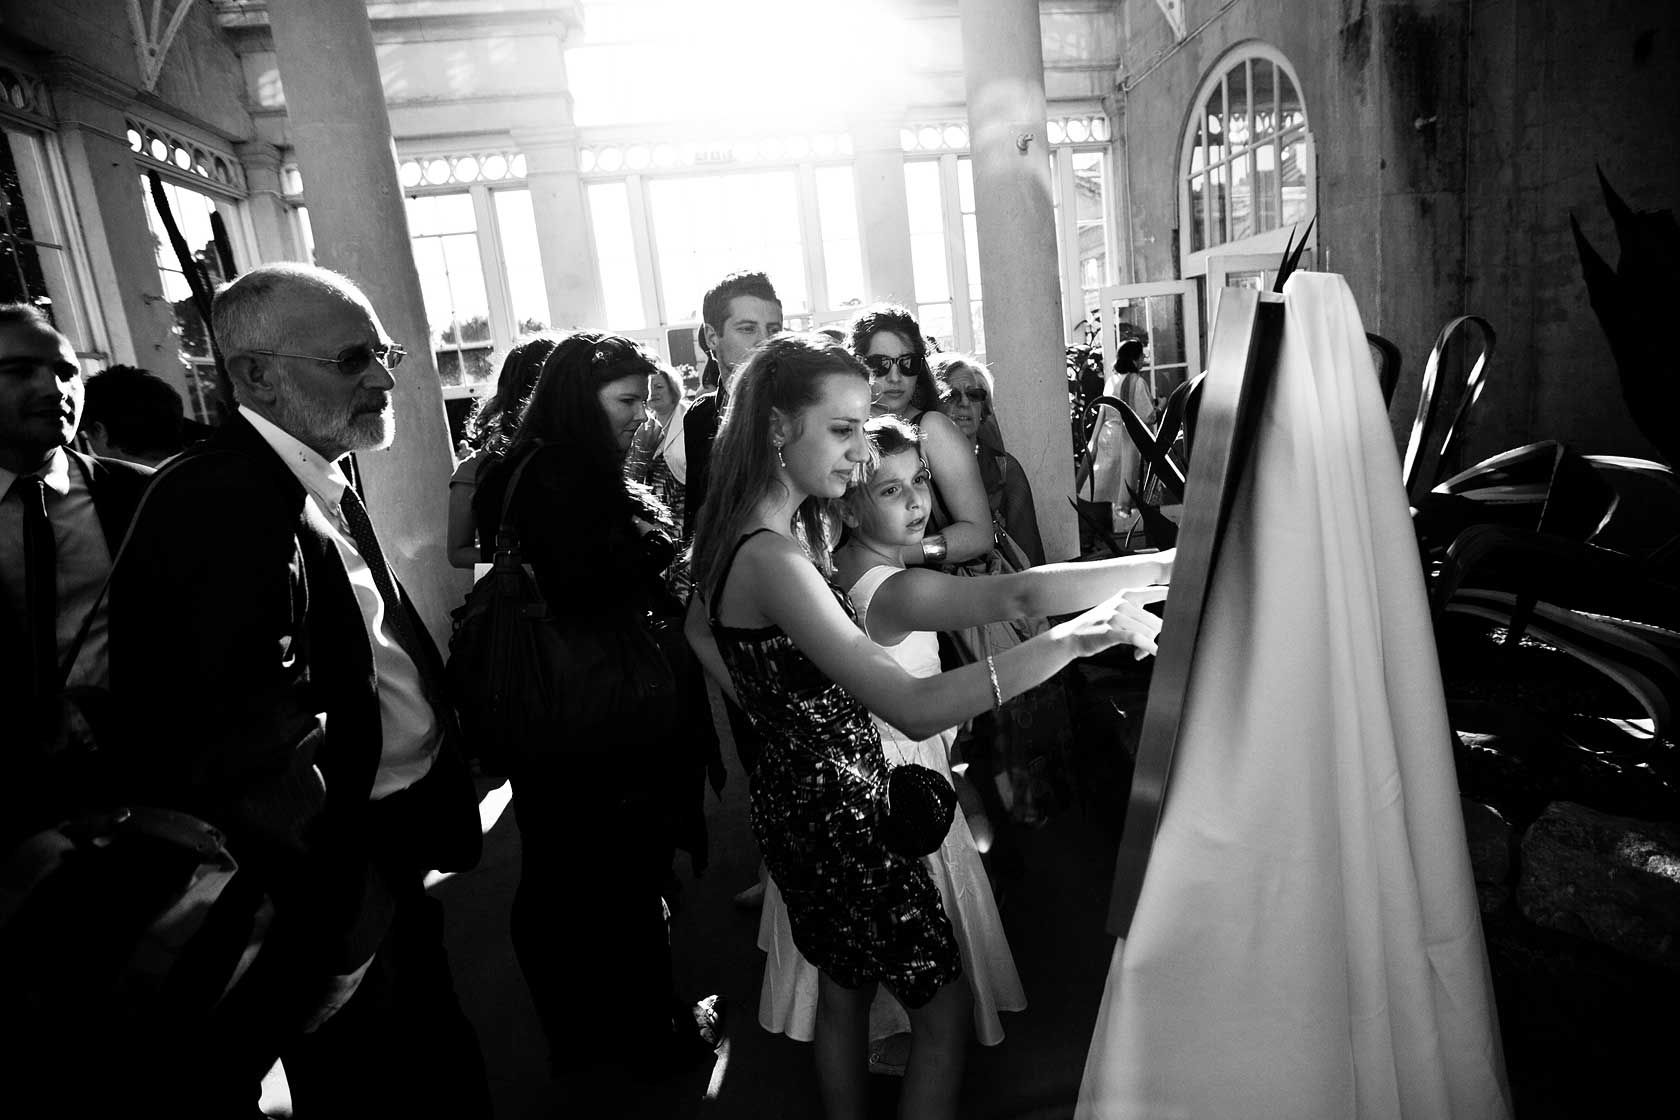 Reportage Wedding Photography at The Petersham Hotel